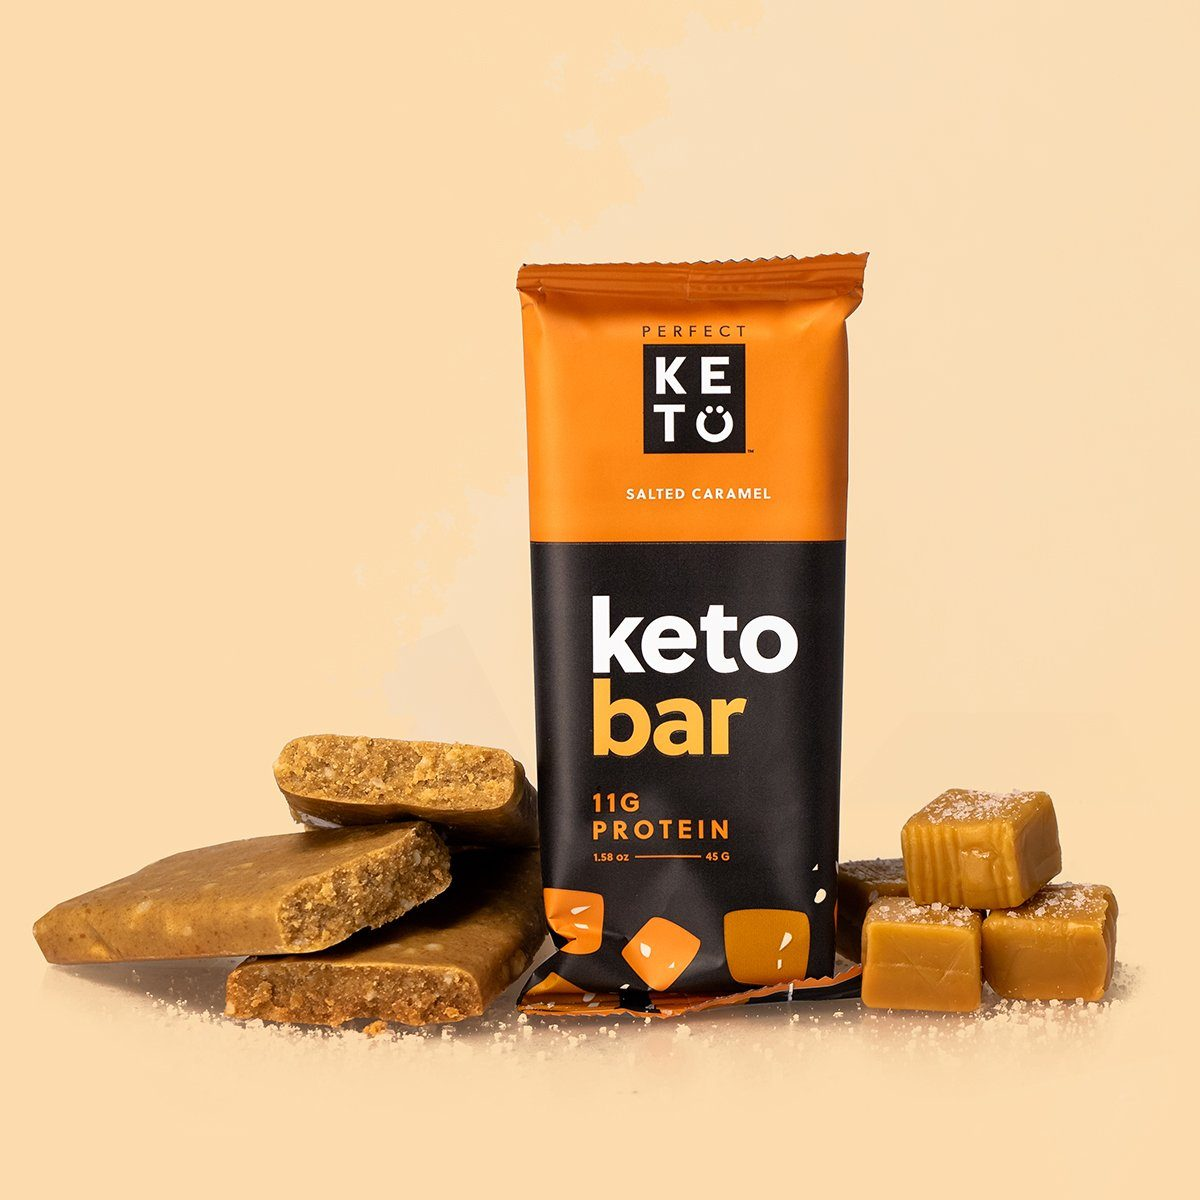 our salty and sweet salted caramel keto bars